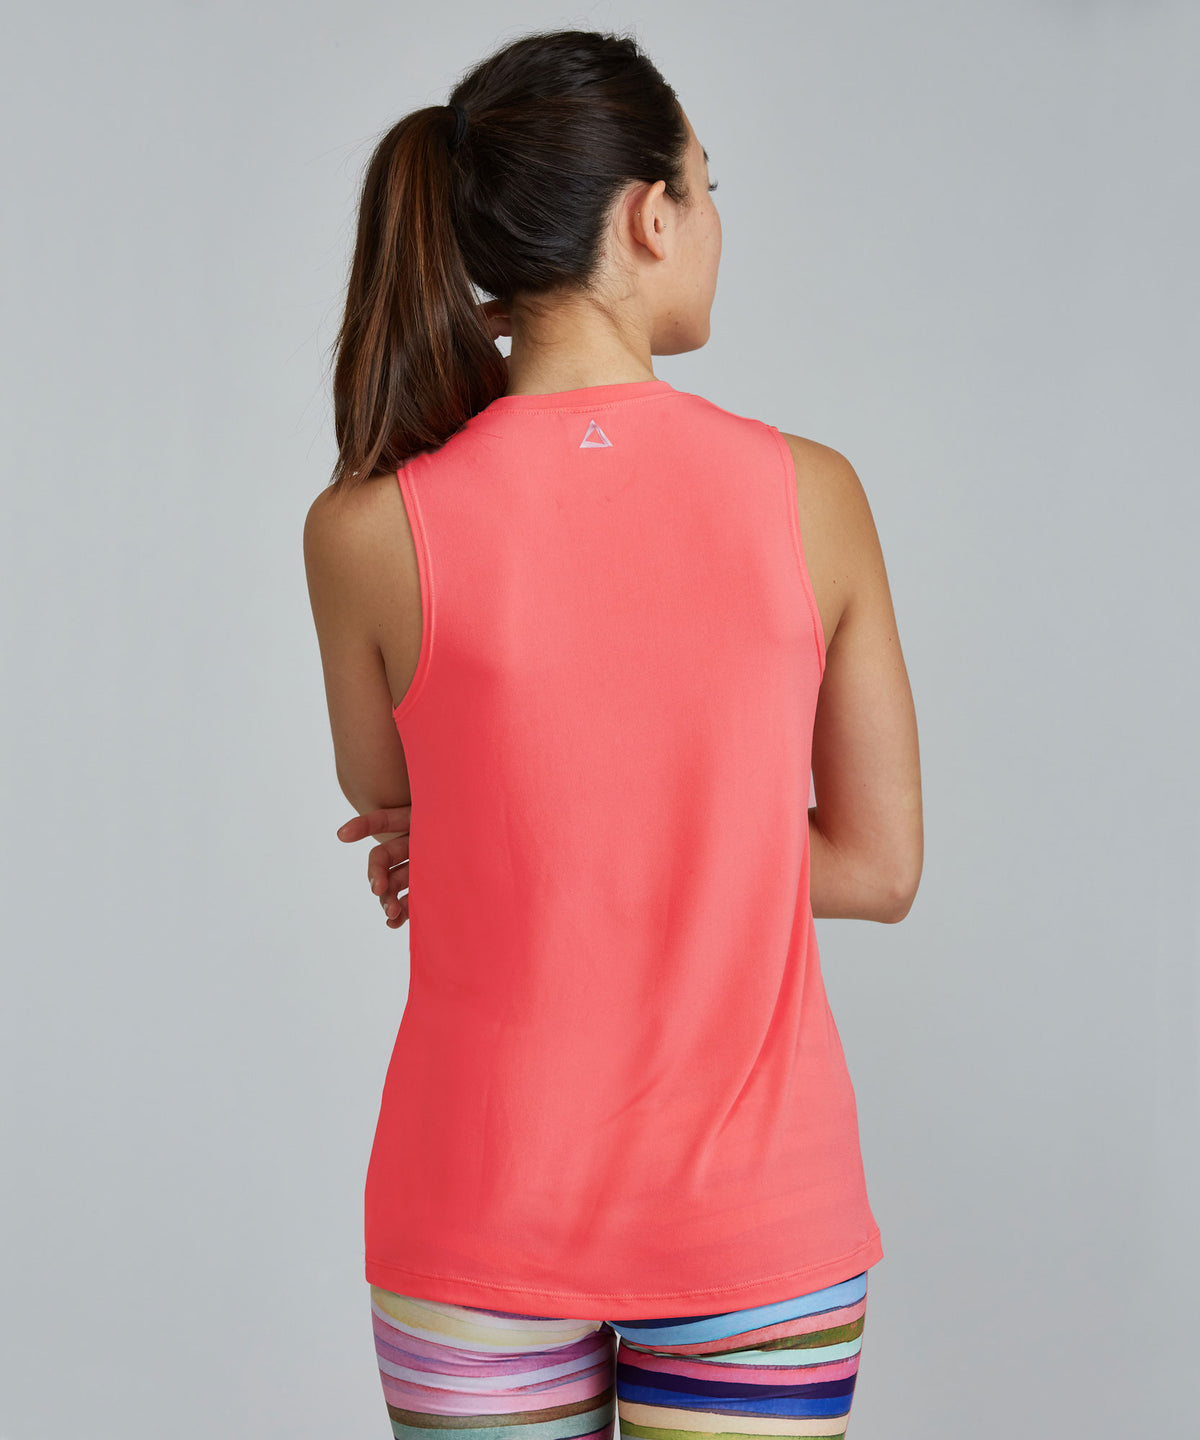 Muscle Tee - Coral Coral Muscle Tee - Women's Activewear Tank Top by PRISMSPORT